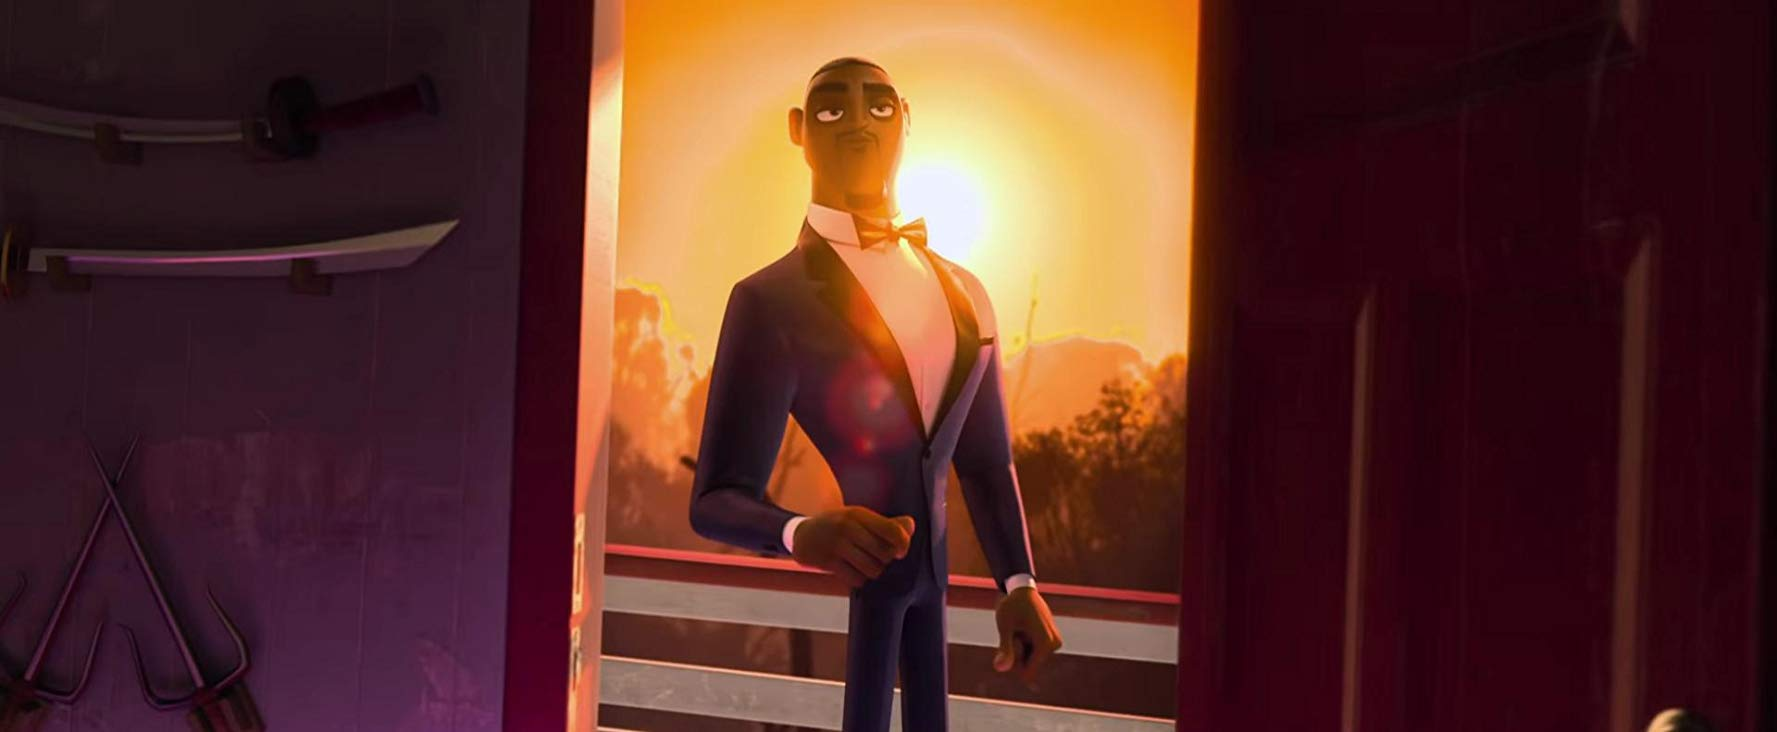 Spies in Disguise pics 3